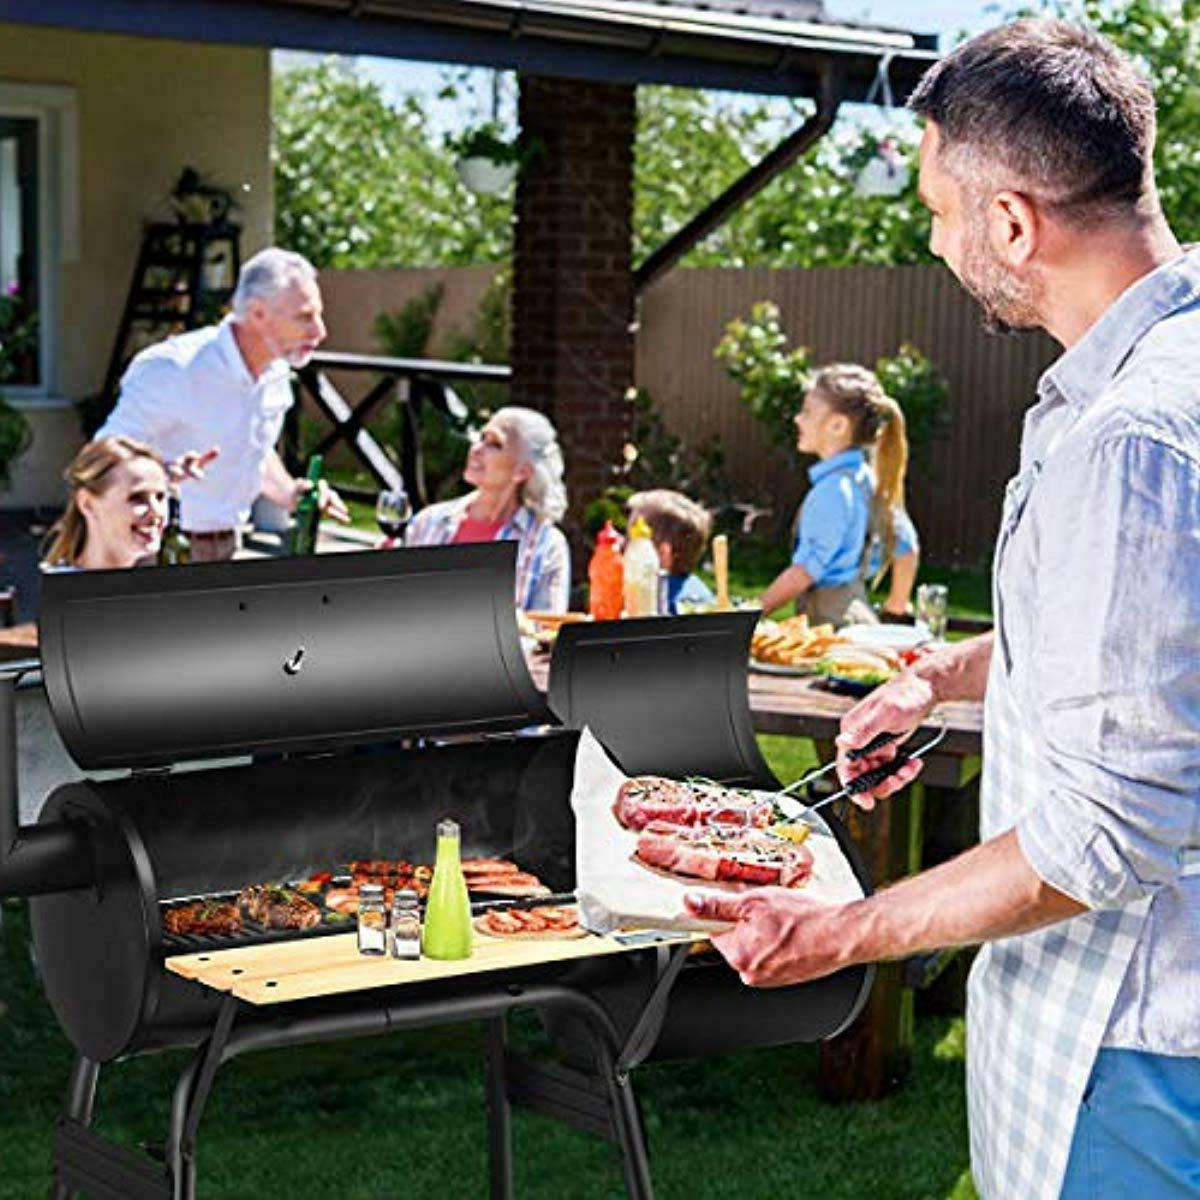 Giantex BBQ Grill Barbecue Grill Patio